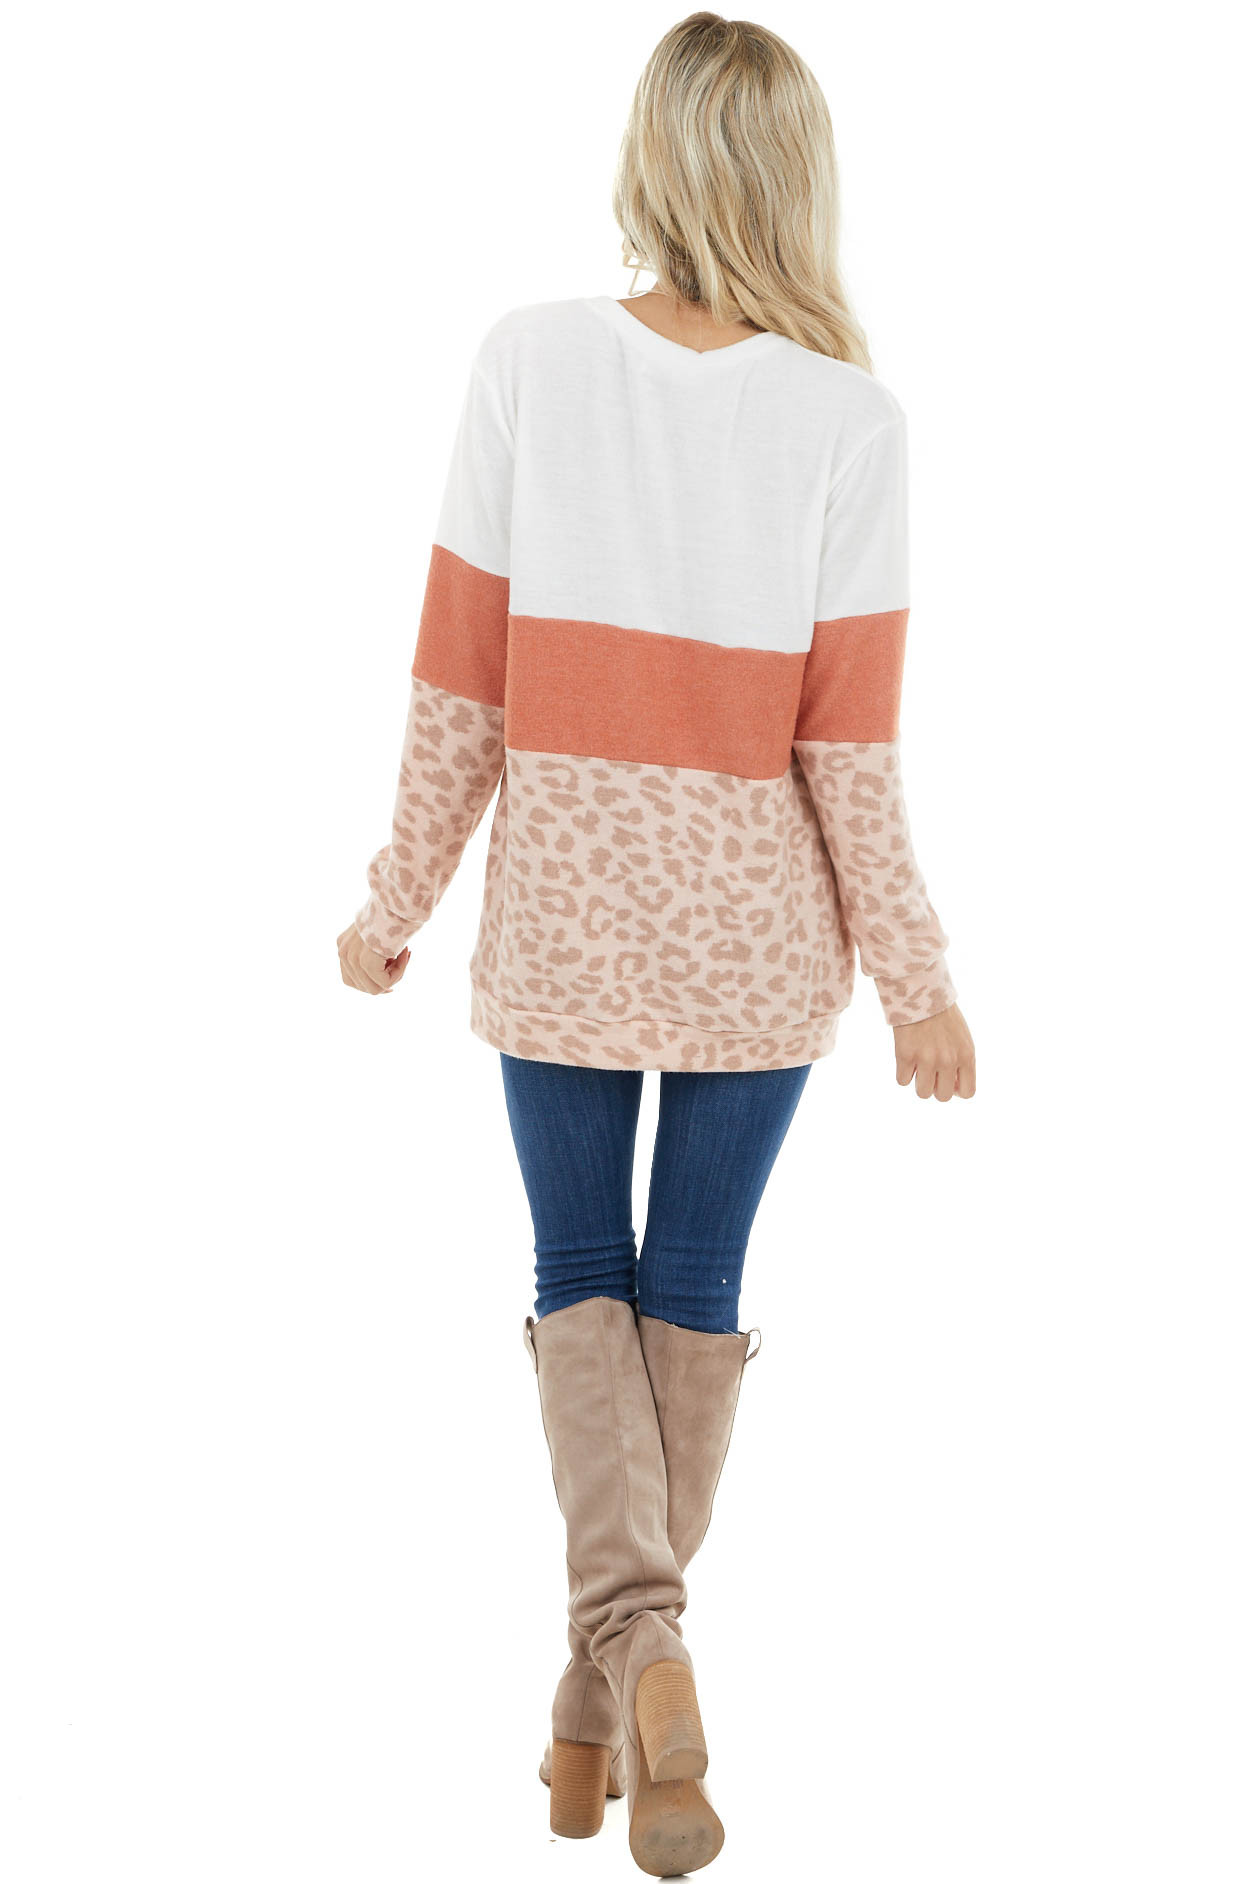 Ivory Colorblock and Leopard Print Knit Long Sleeve Top